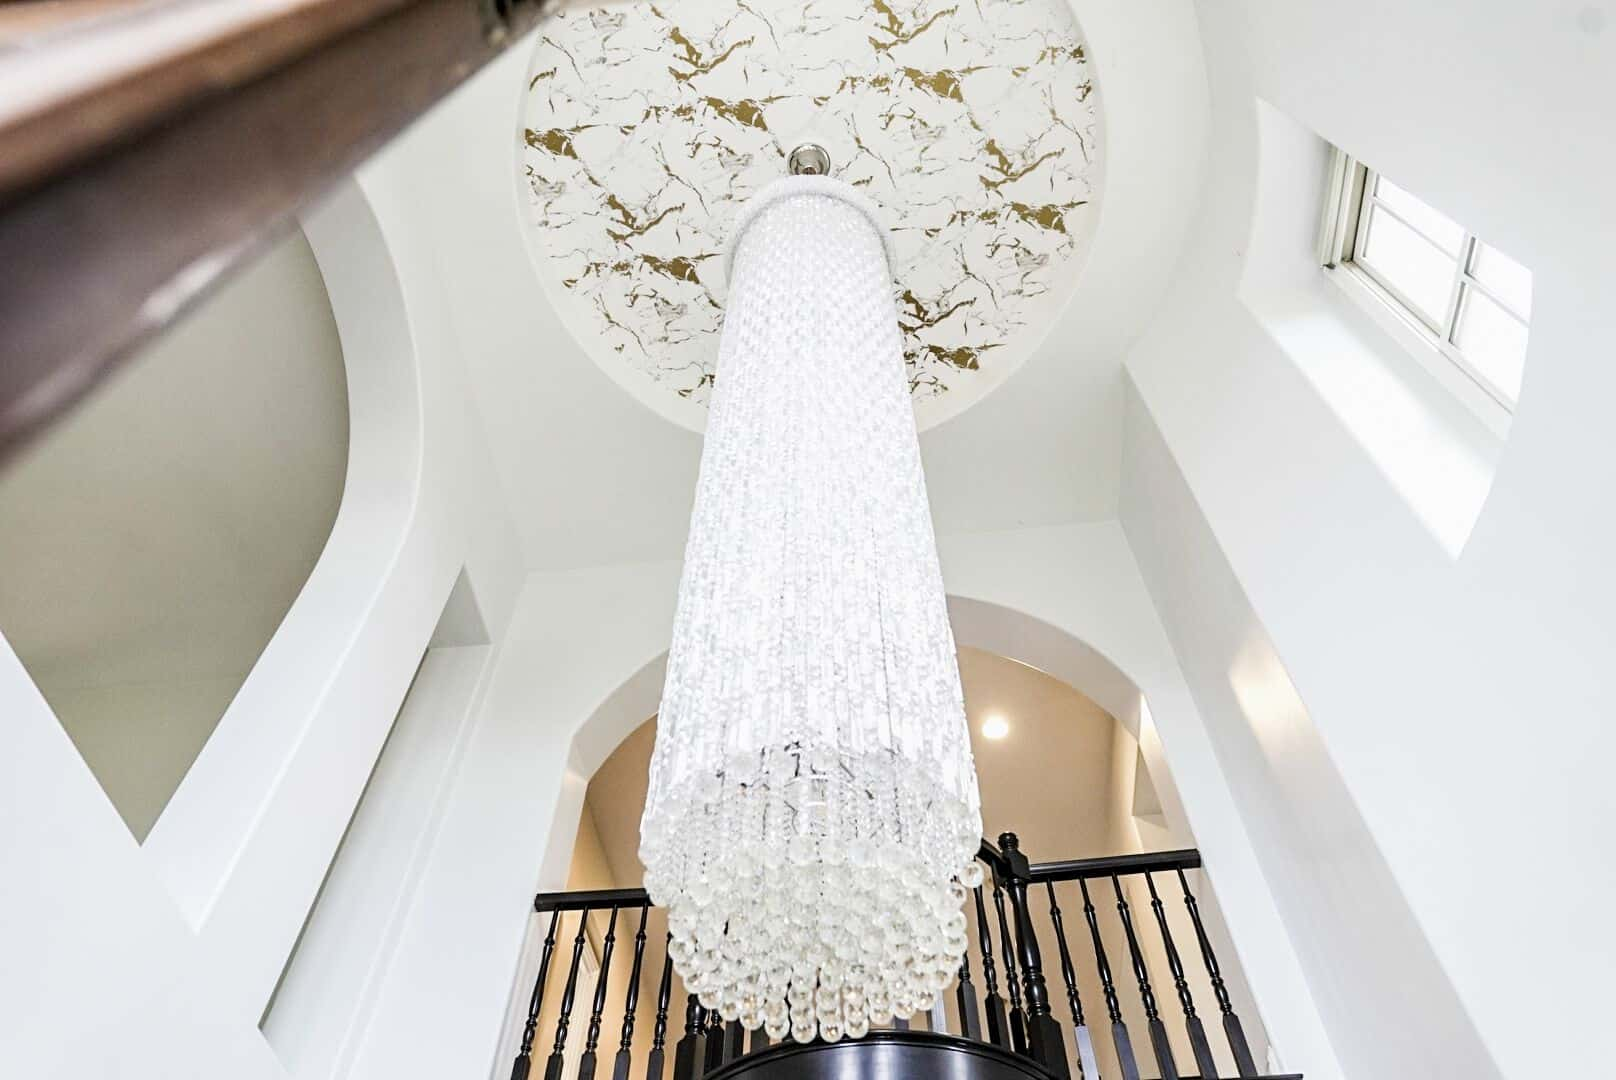 A focused look at the house's grand chandelier, boasting how luxurious this mansion is. Images courtesy of Toptenrealestatedeals.com.